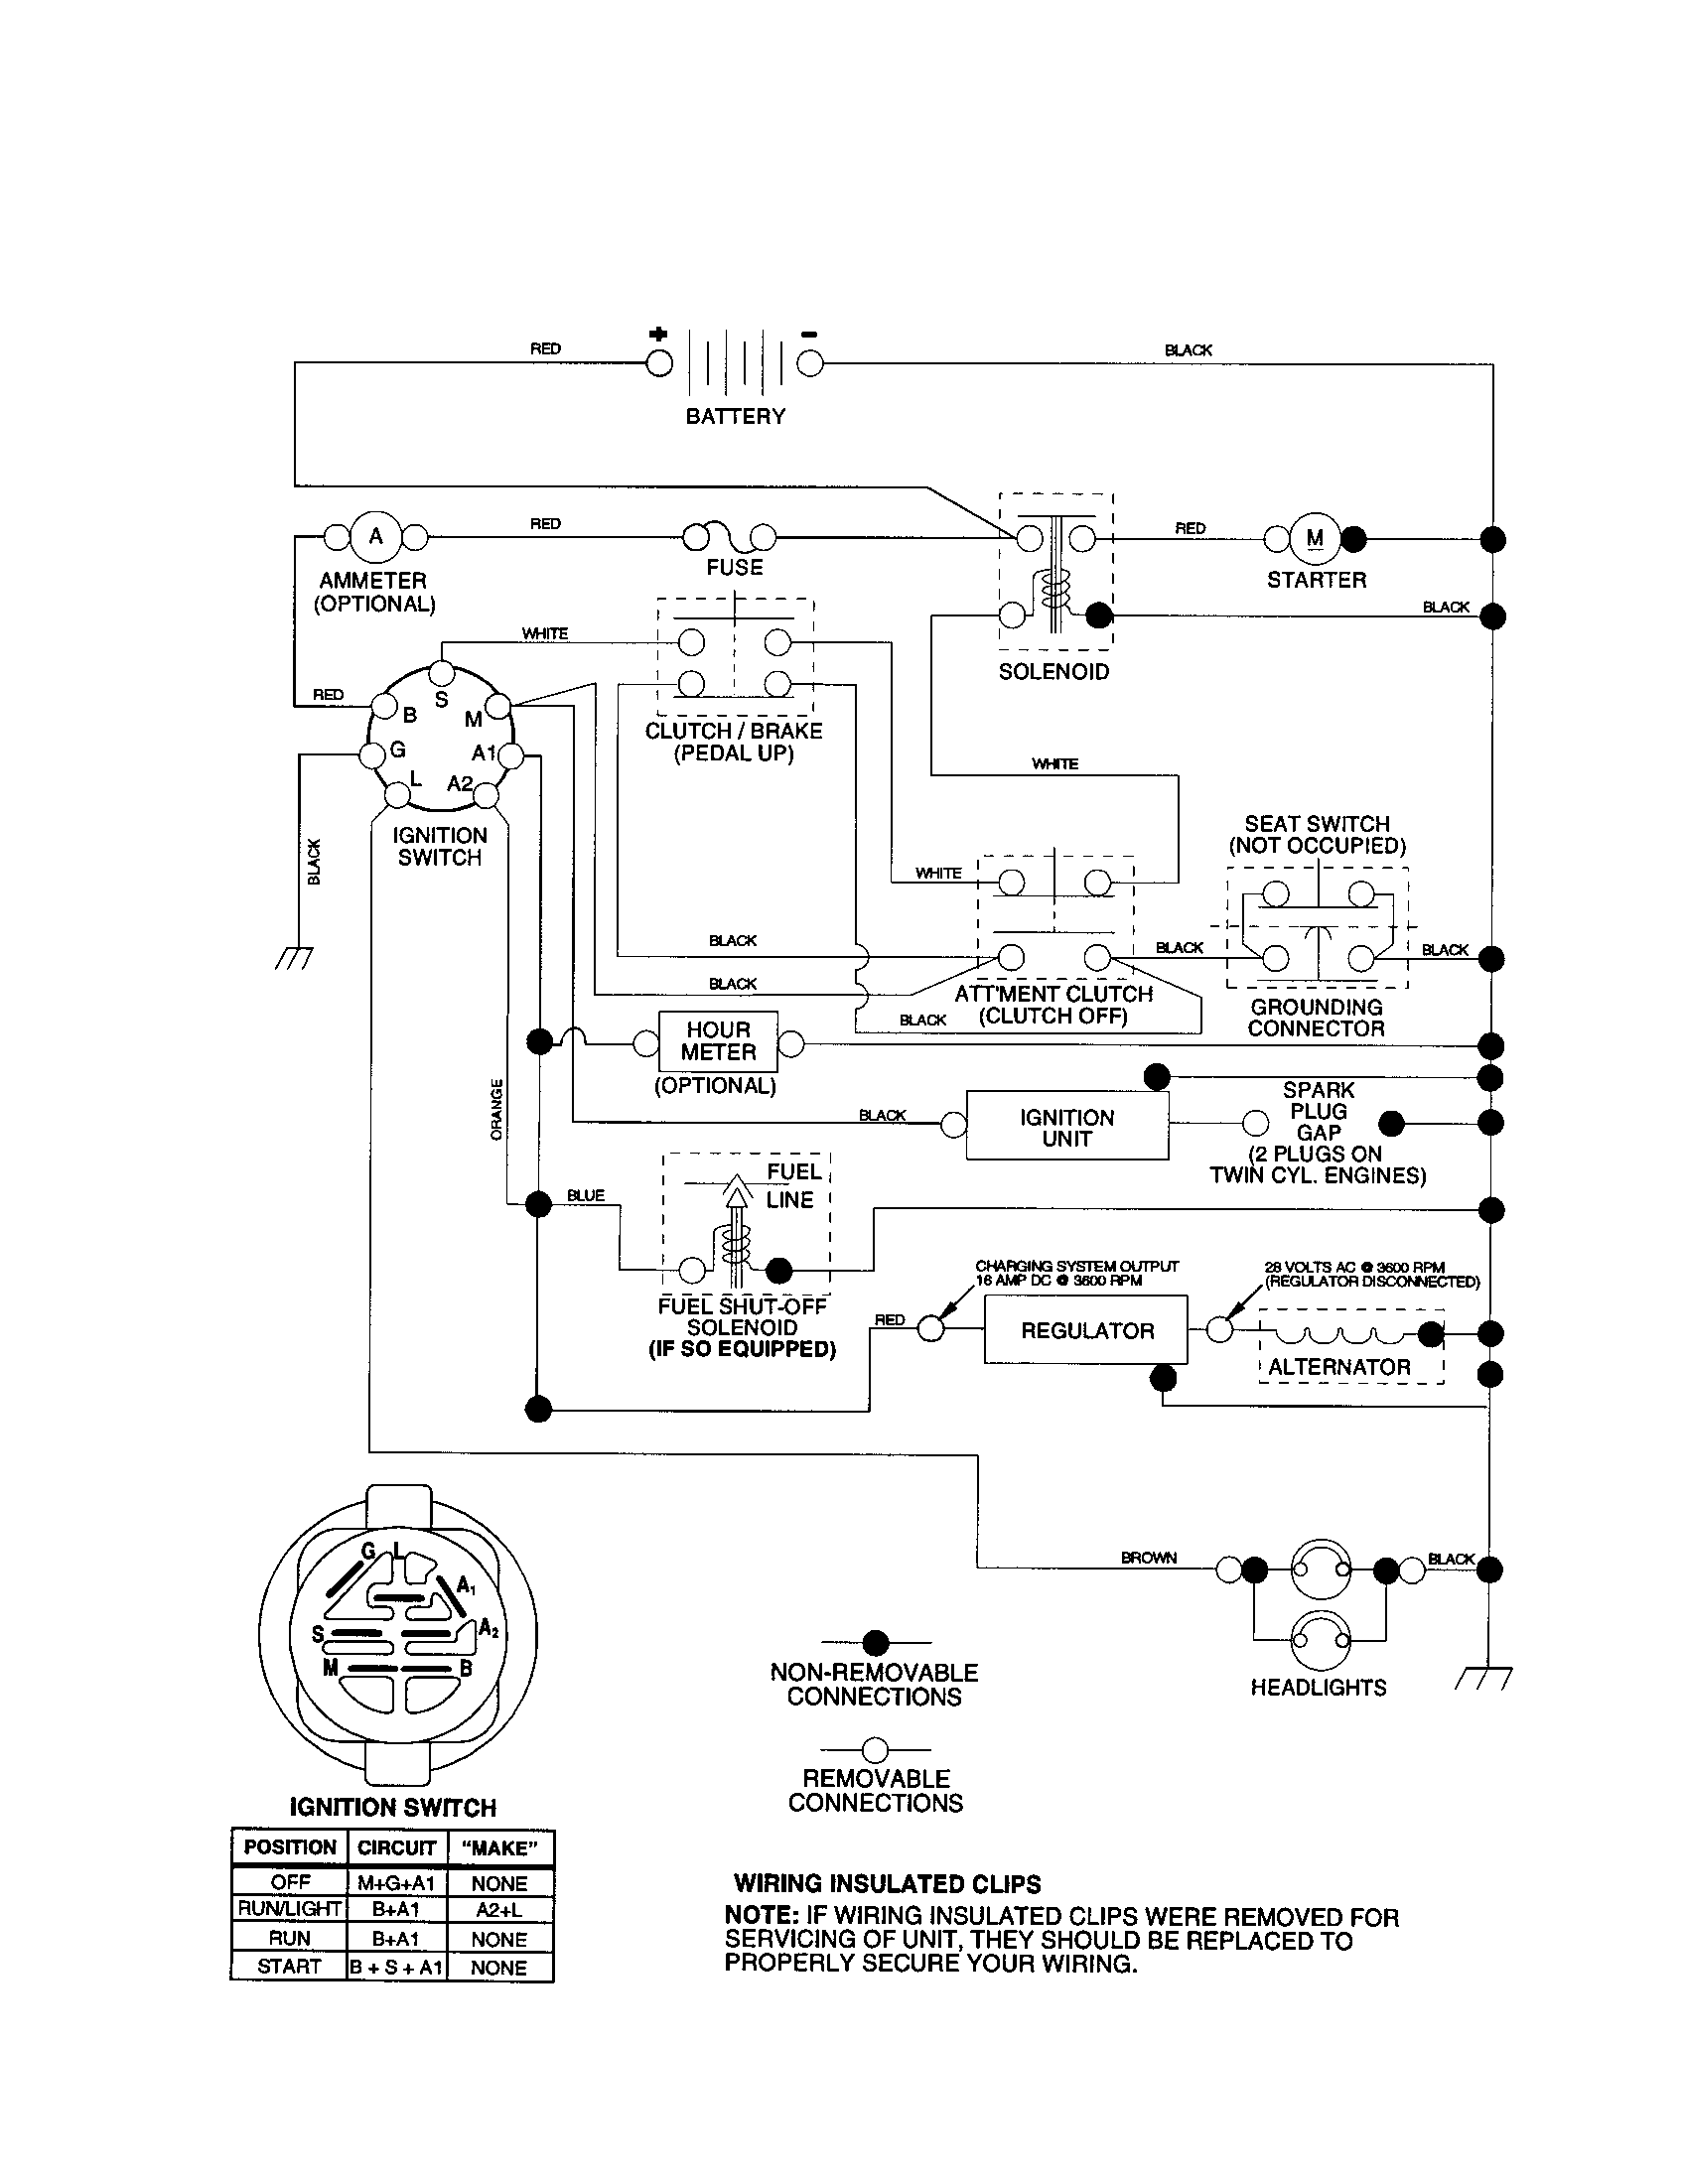 hight resolution of poulan pro lawn mower wiring diagram poulan free engine husqvarna lawn mower wiring diagram lawn mower solenoid wiring diagram